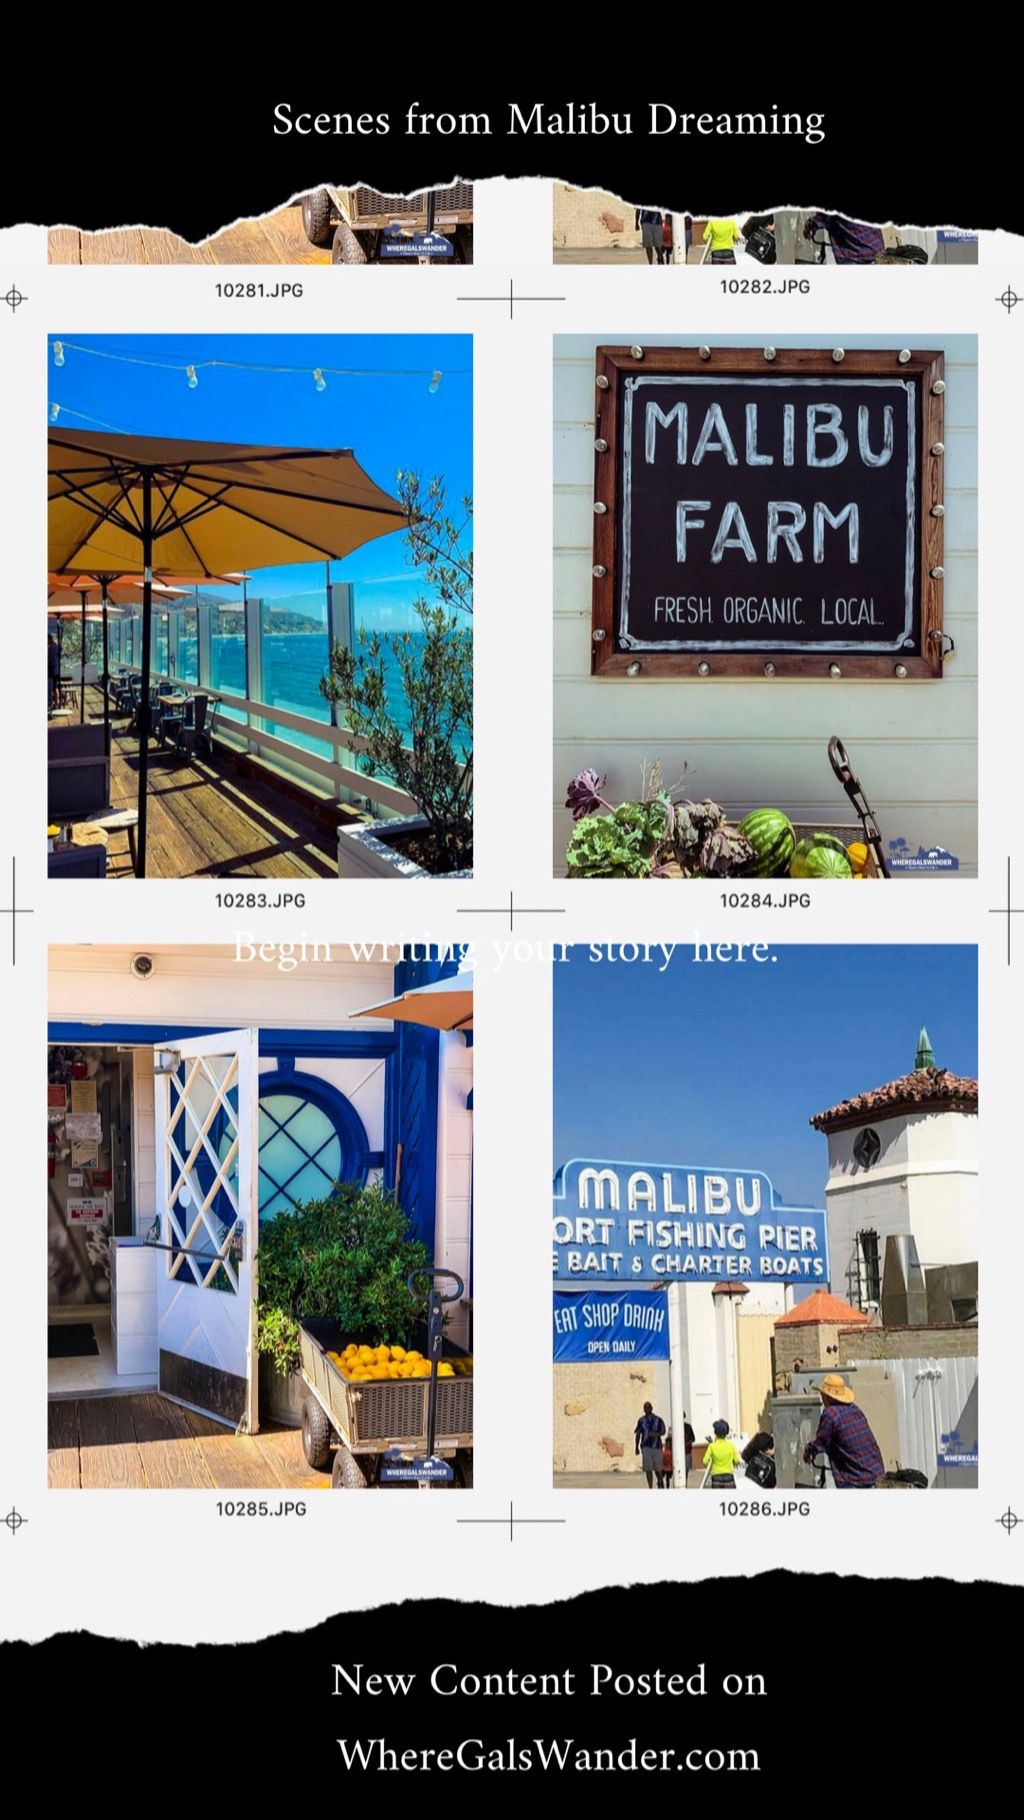 A sneak peek at our online content on malibu farms cafe